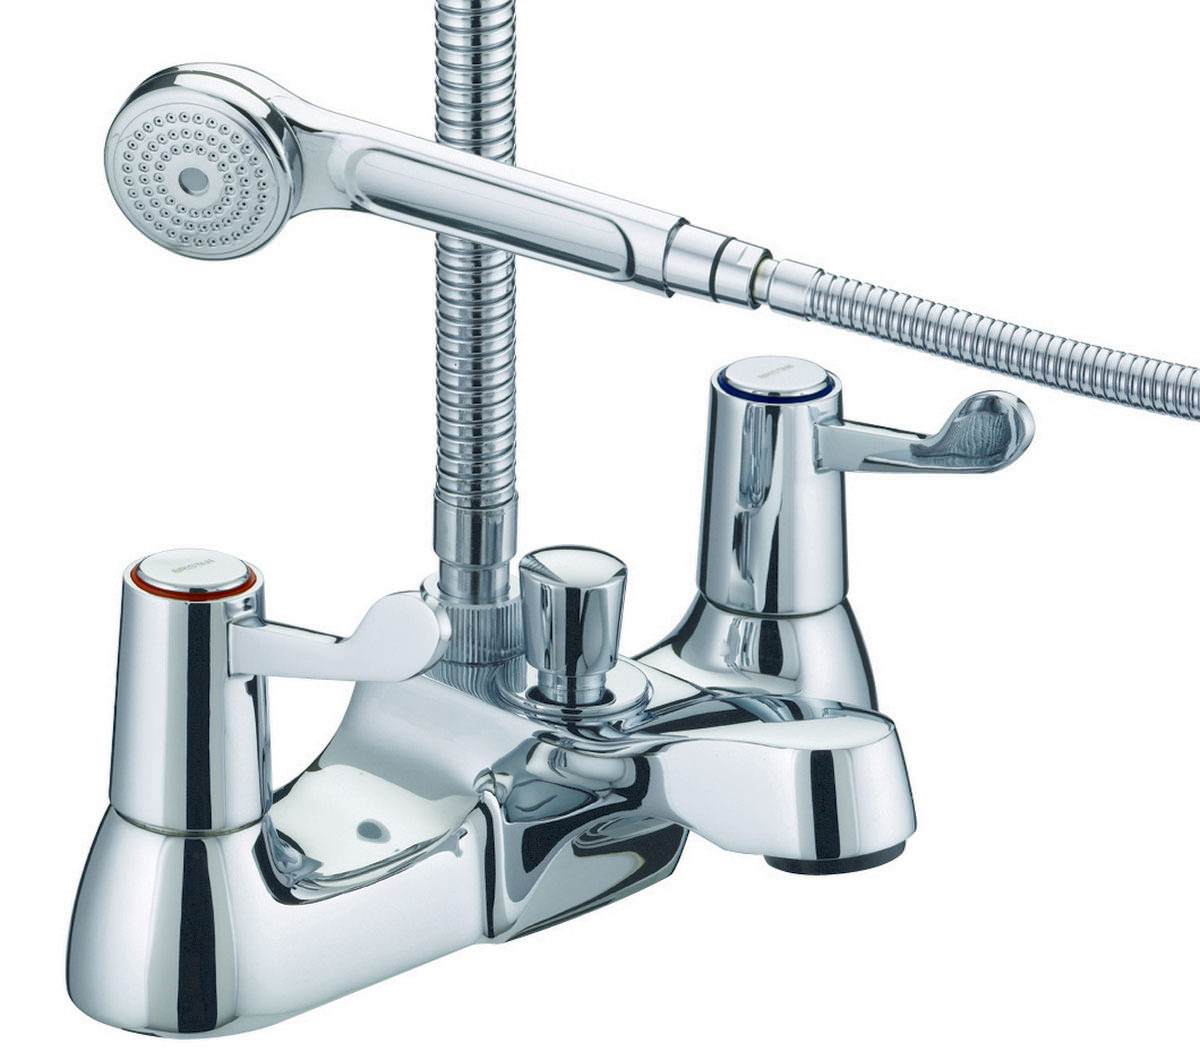 Bath Mixer Taps With Shower Head.Bristan Lever Bath Shower Mixer Tap ...